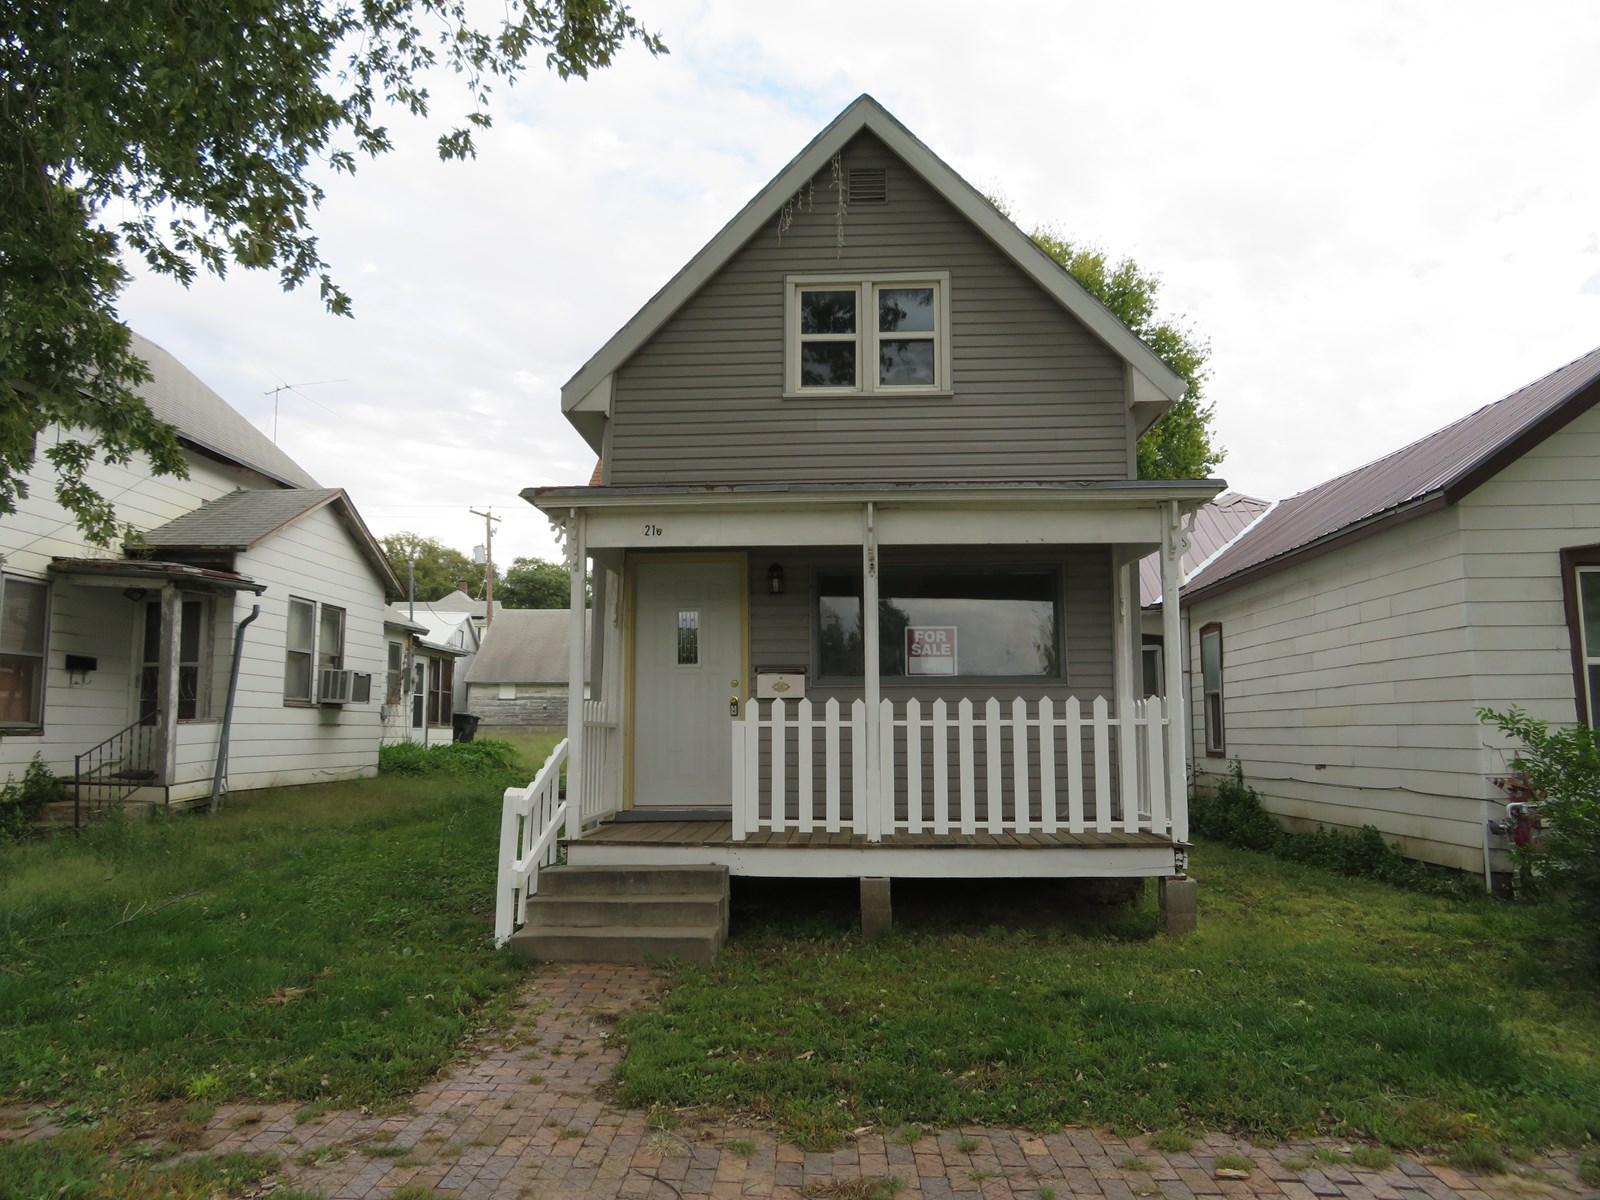 UPDATED 2 BEDROOM 1 BATH FOR SALE MISSOURI VALLEY, IOWA